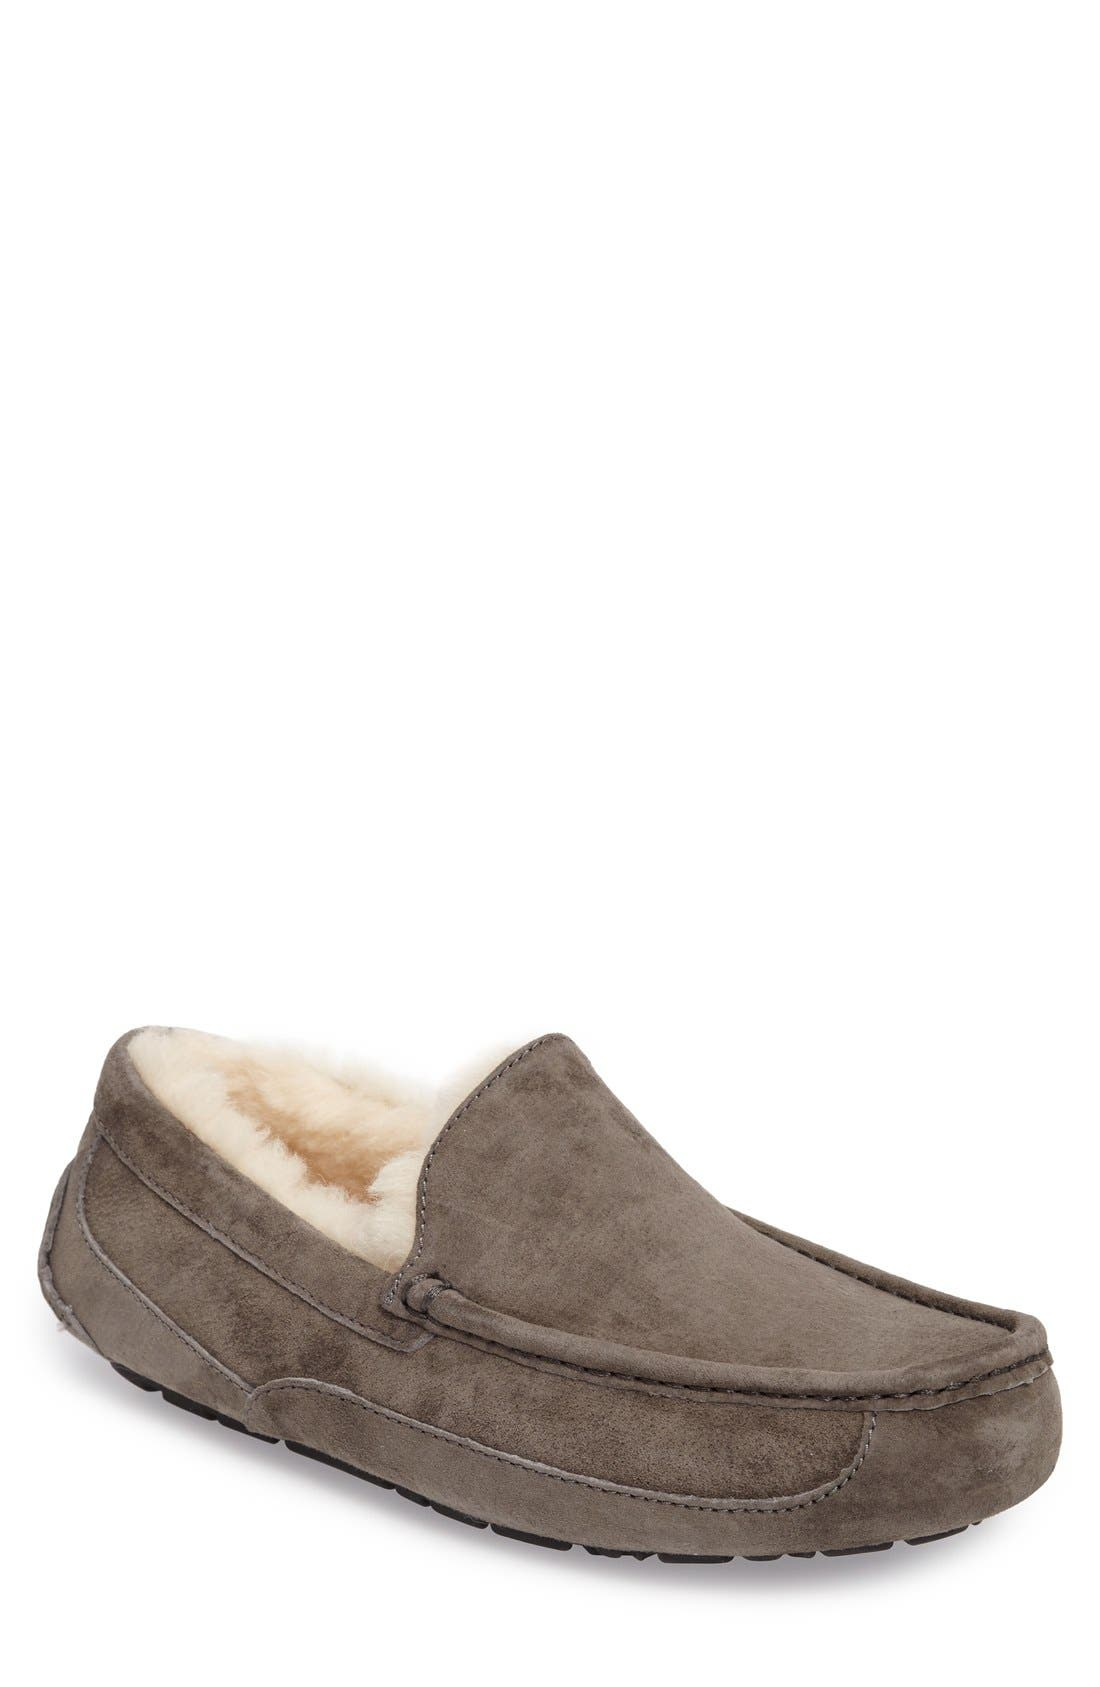 Ascot Suede Slipper,                             Main thumbnail 1, color,                             Charcoal